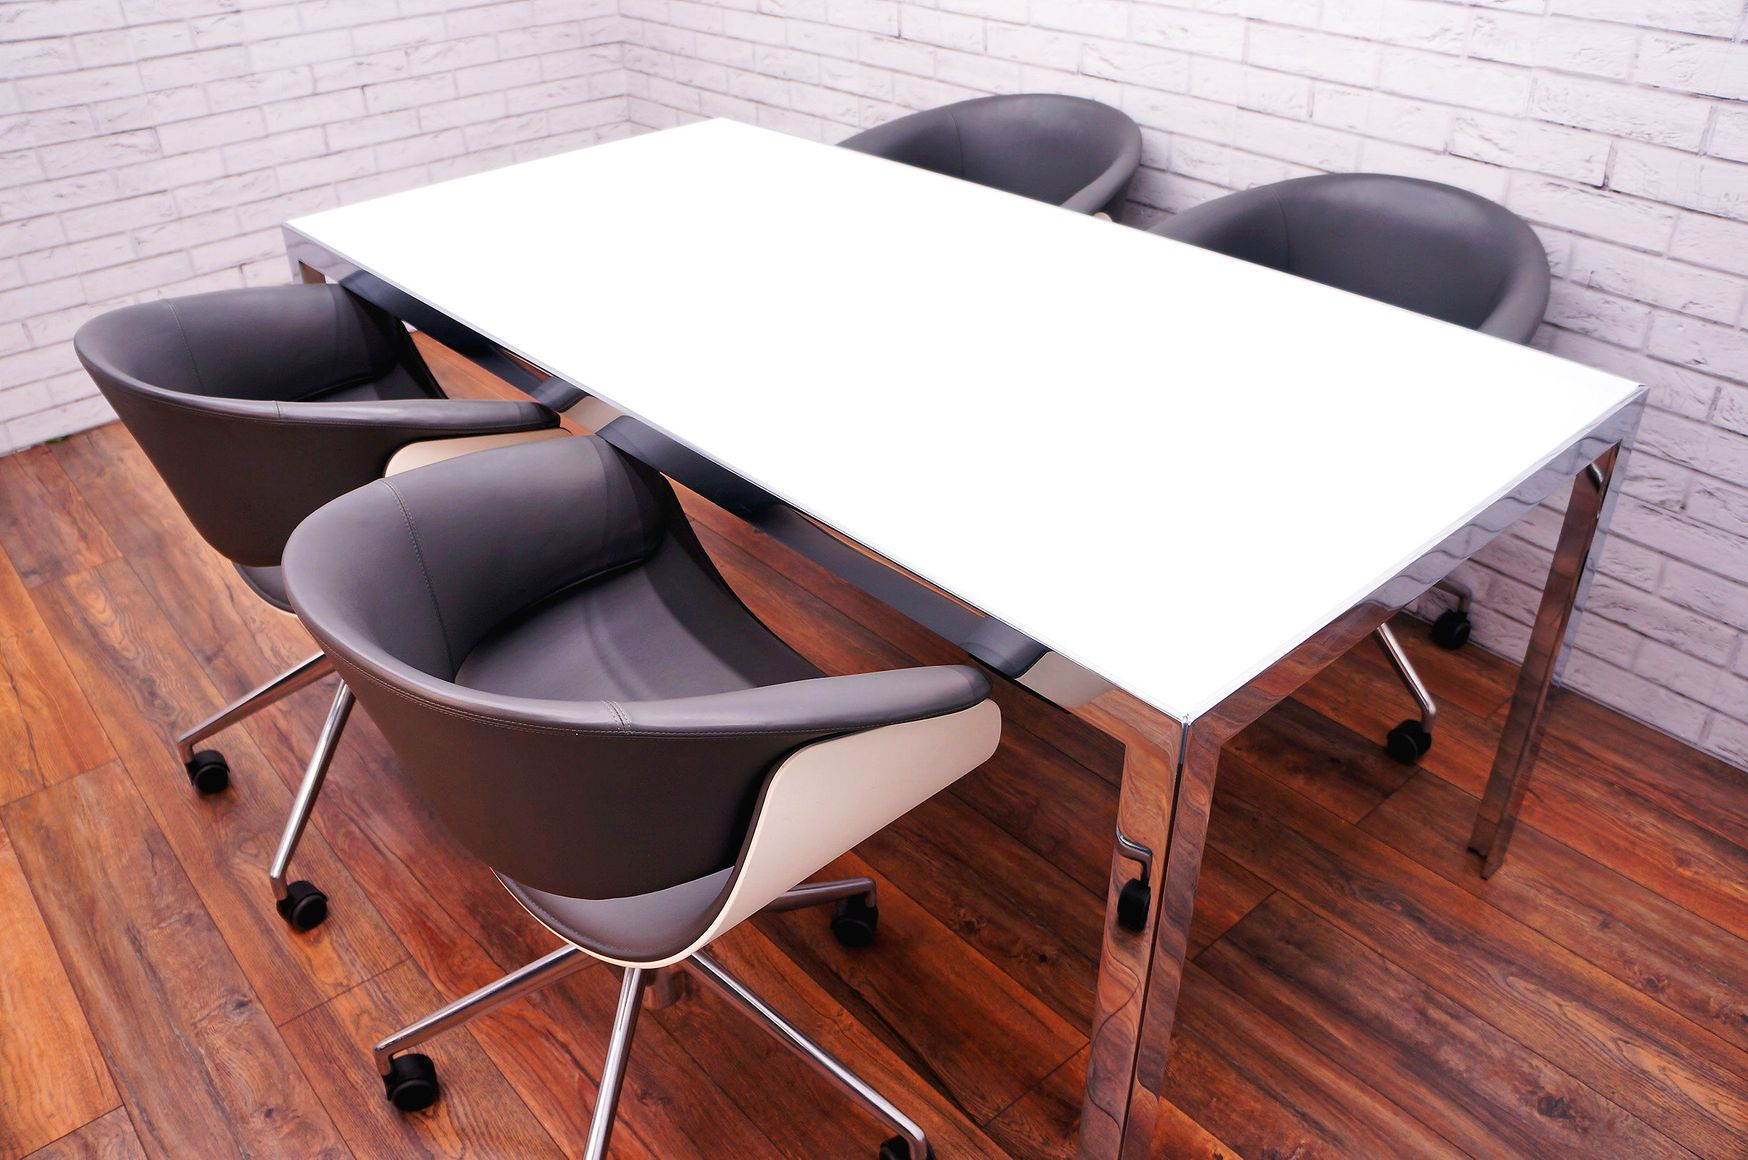 B&B Italia 'Progetto' Meeting Table with White Glass Top and Chrome Frame/Legs